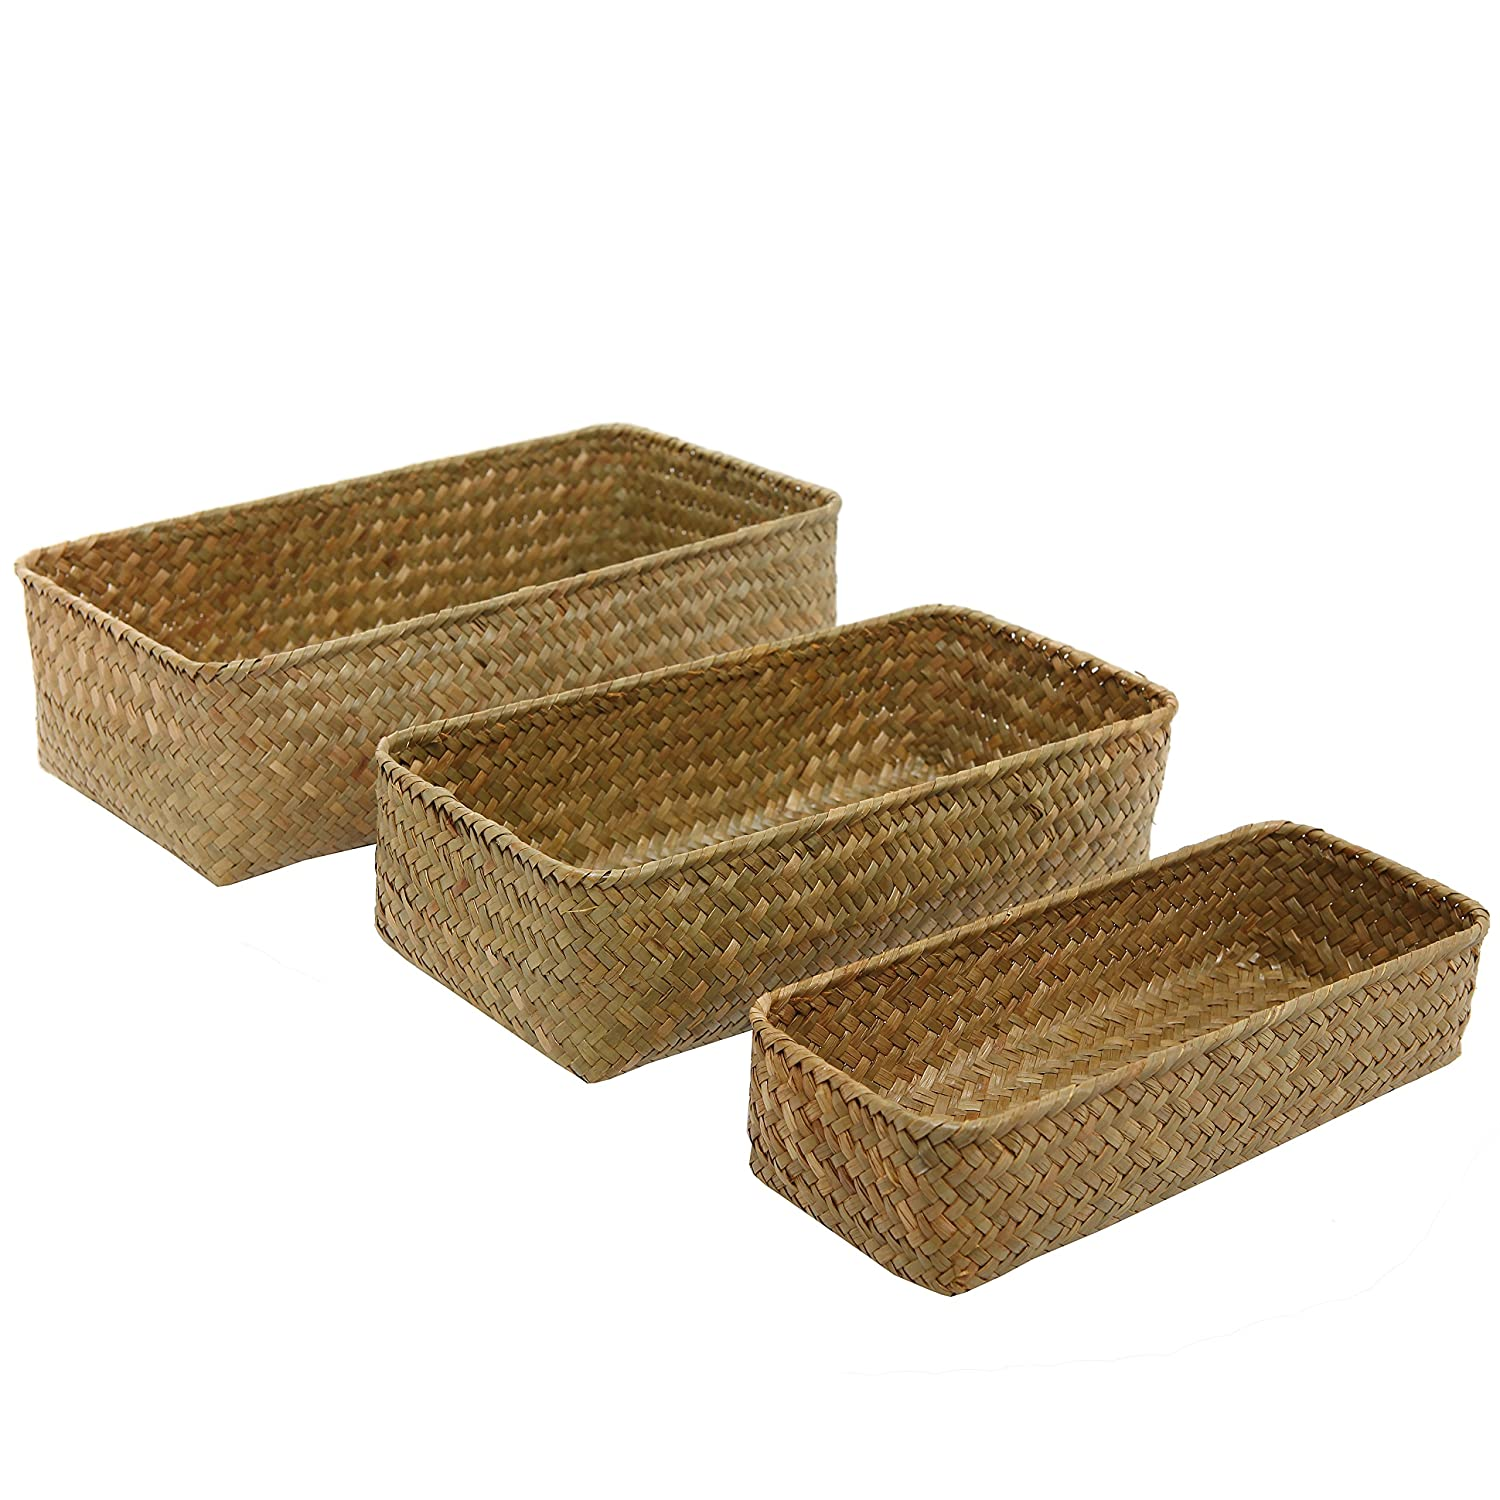 MyGift Set of 3 Rectangular Handwoven Natural Seagrass Wicker Nesting Storage Baskets and Home Organizer Bins SPOMHNK3899